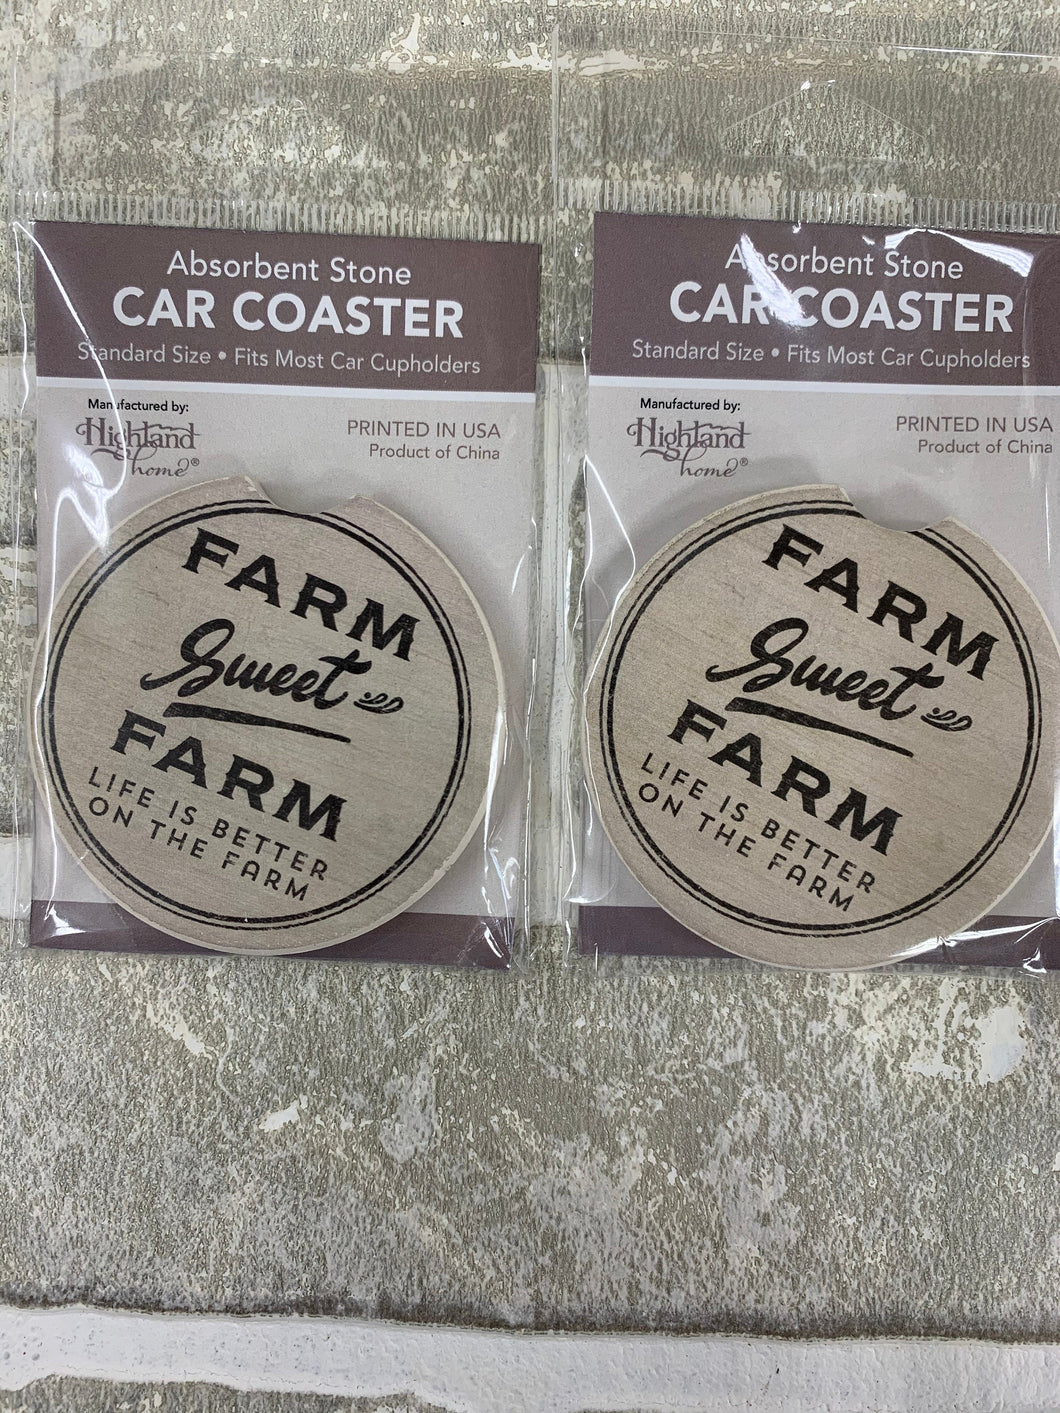 Farm sweet farm car coasters